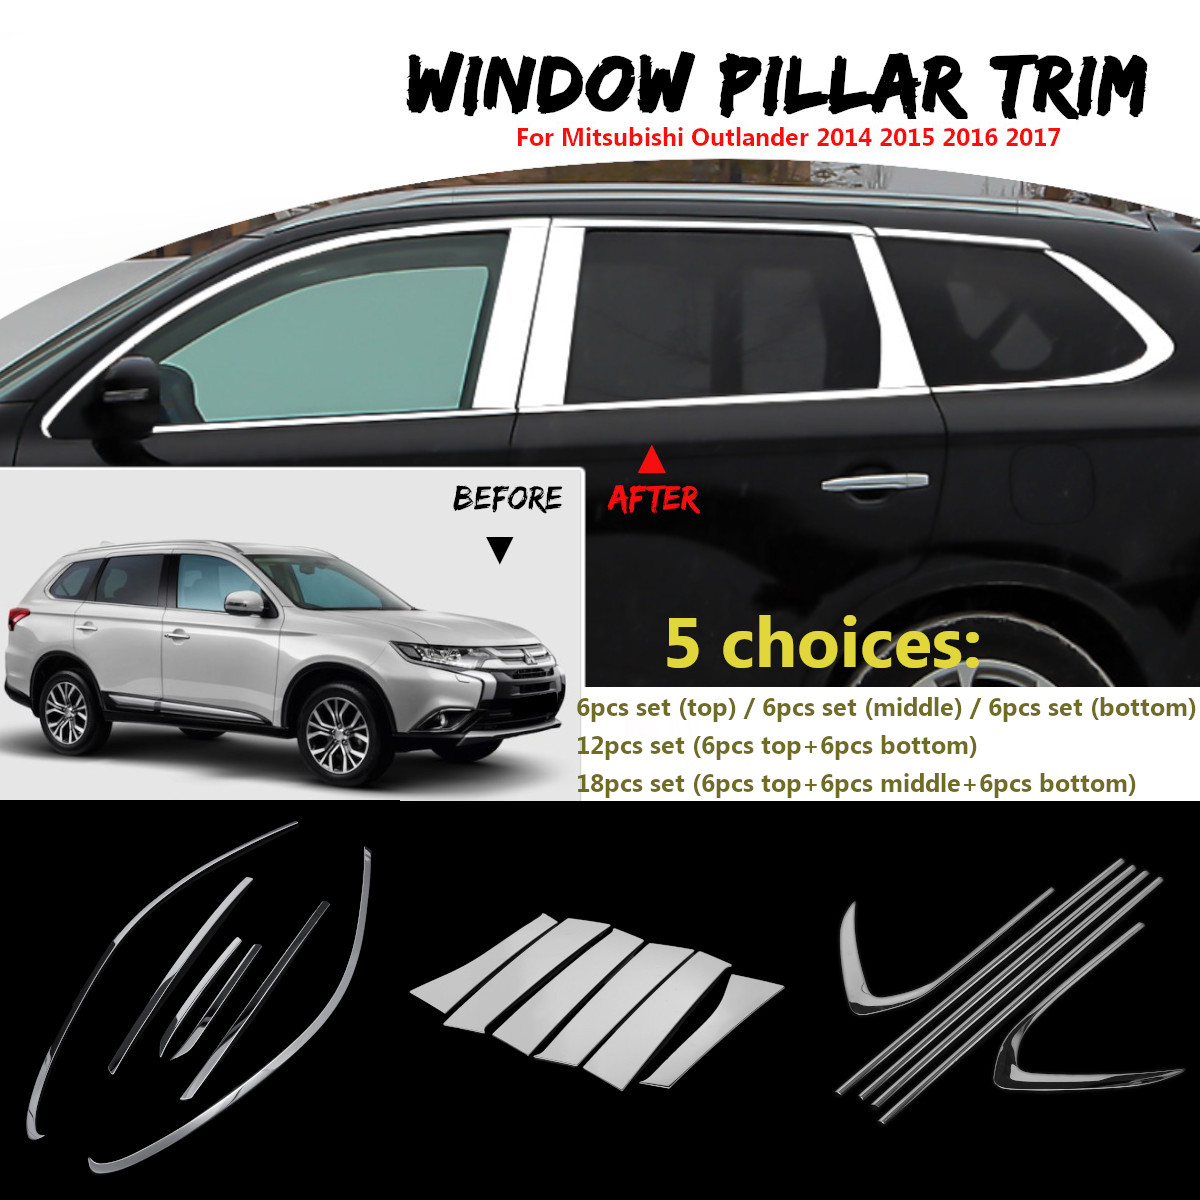 Car Window Pillar Trim Cover Stainless Steel Chrome Decoration for Mitsubishi <font><b>Outlander</b></font> 2014 2015 <font><b>2016</b></font> 2017 Car Styling image